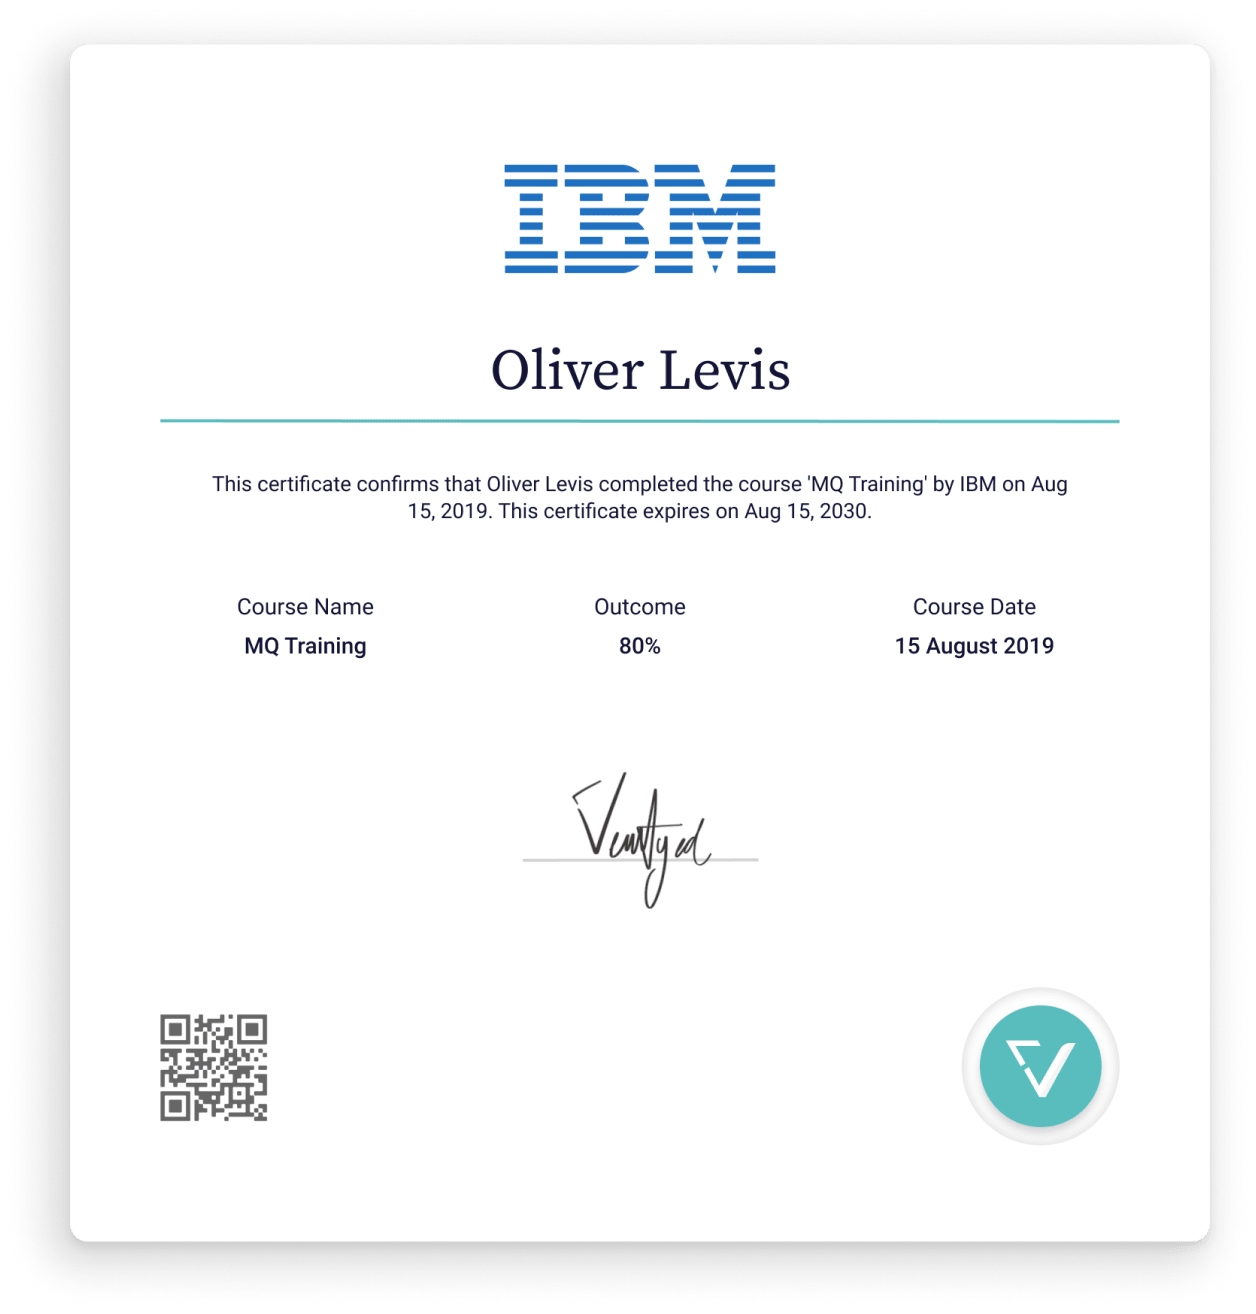 Certificate from IBM.